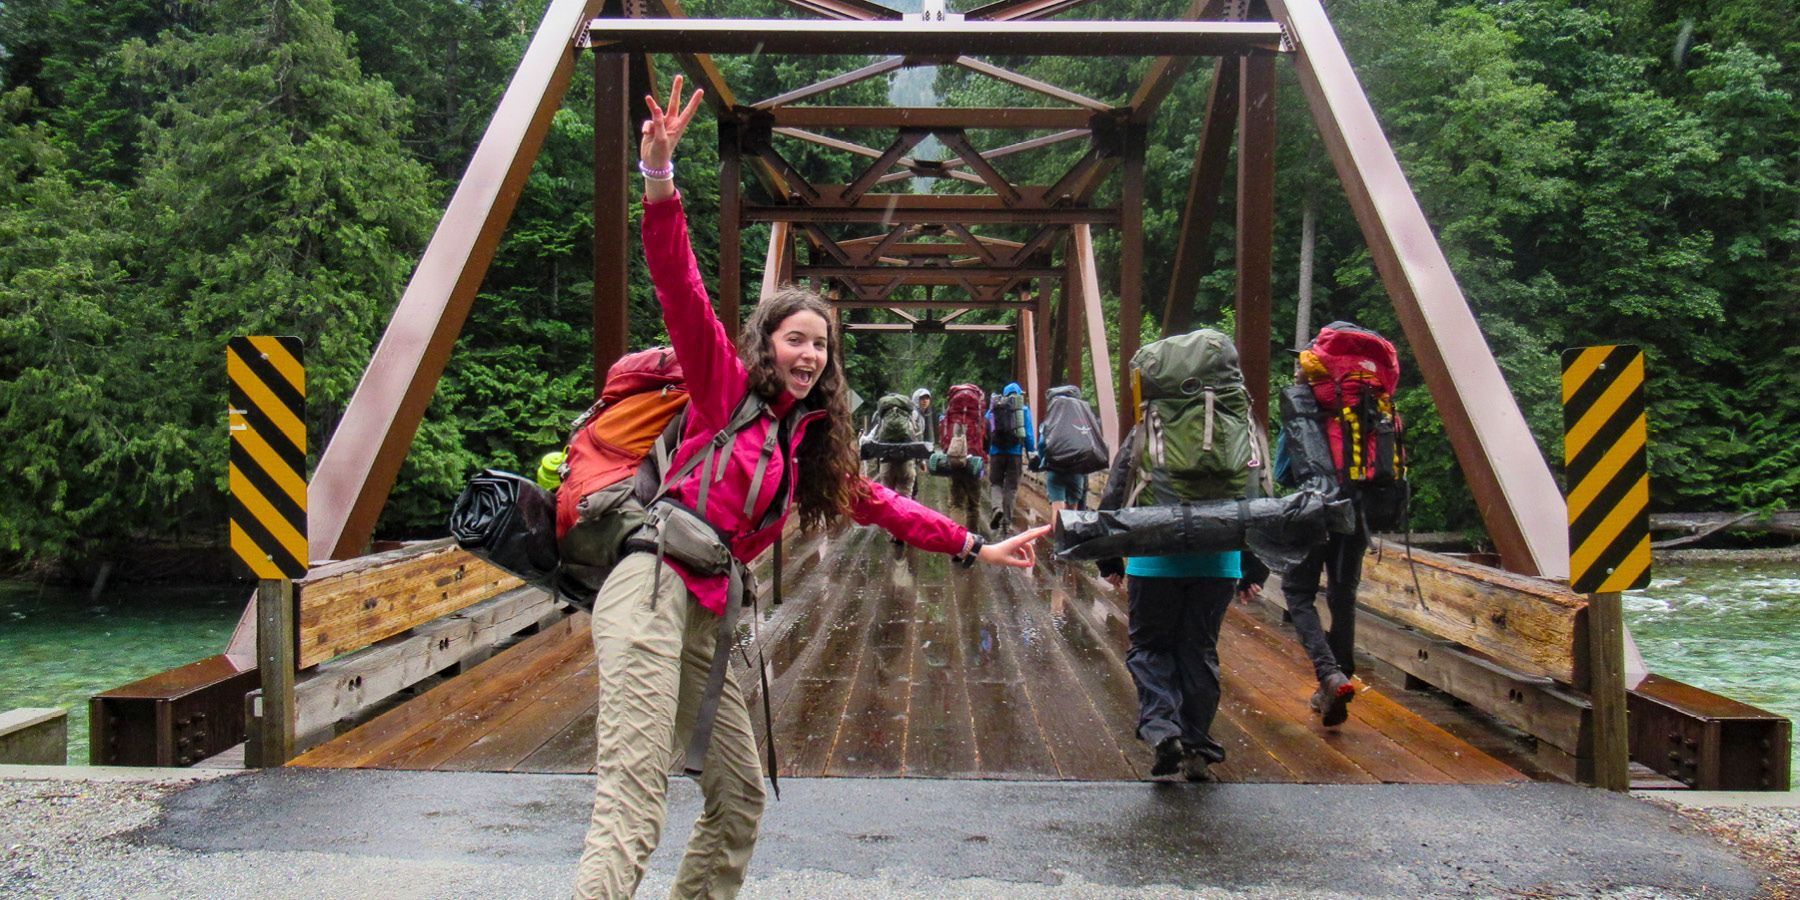 Teen girl happy as she crosses a bridge into the wilderness with friends.